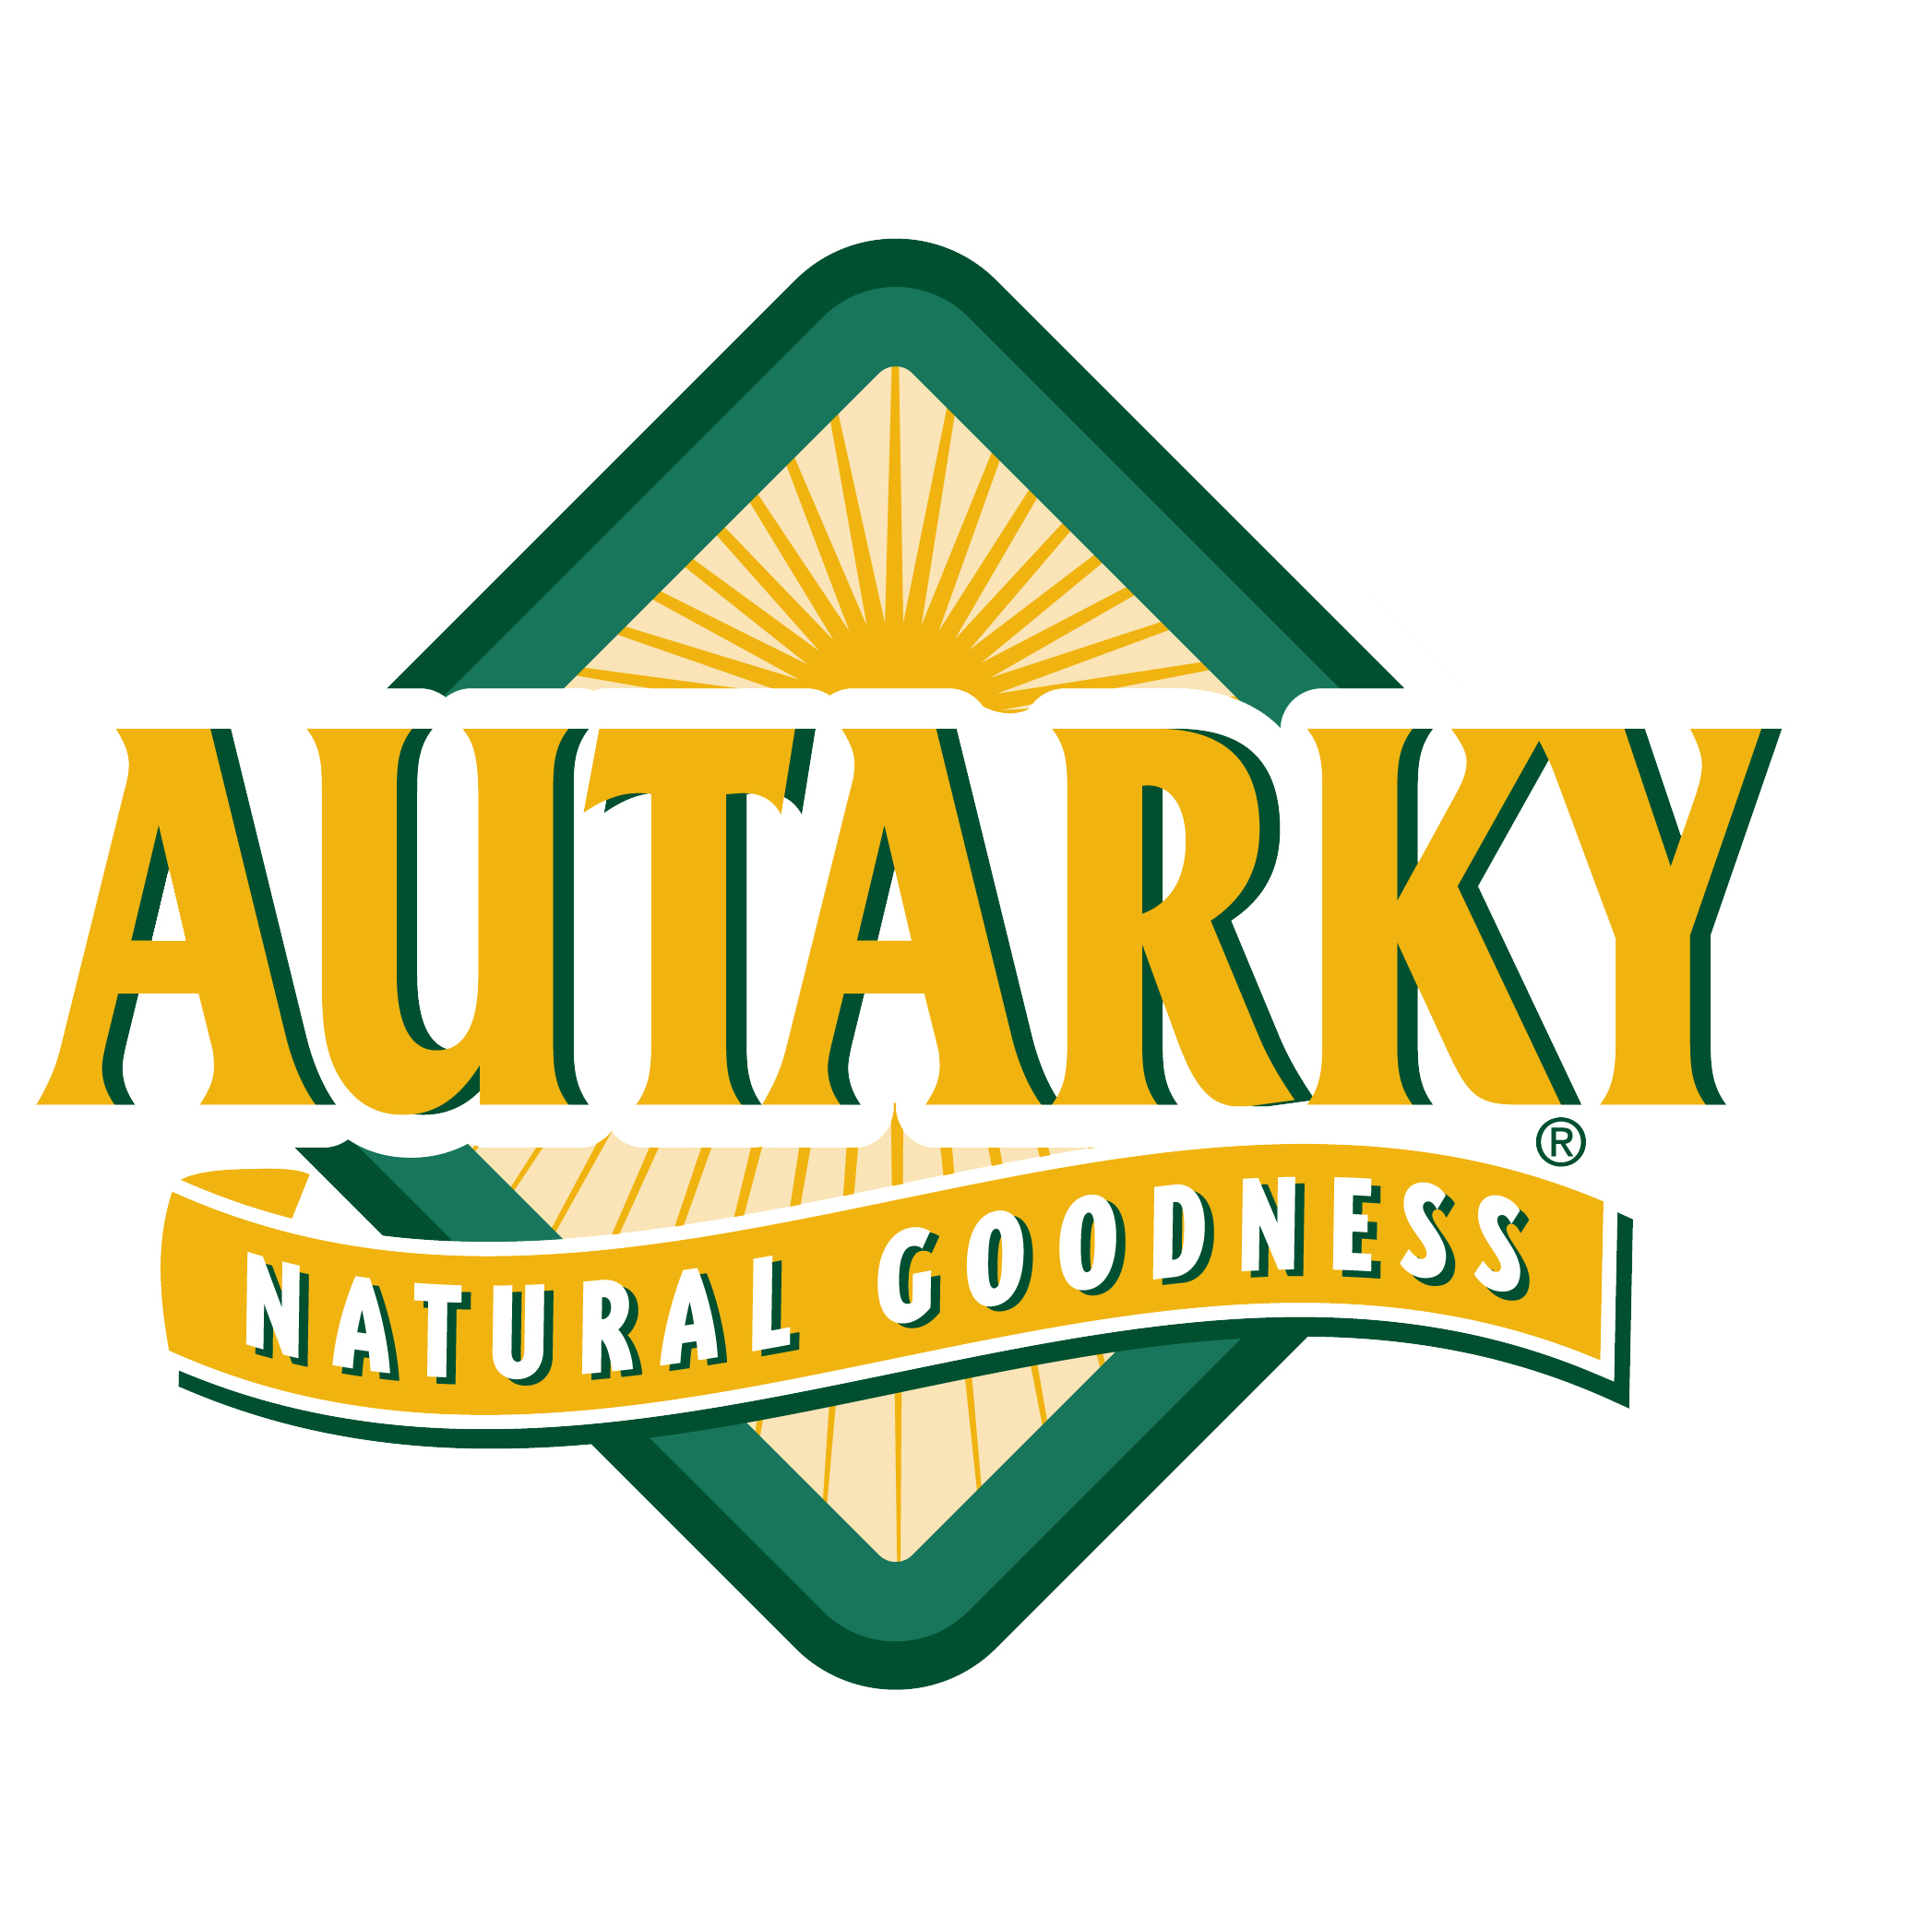 https://www.sealsfodder.co.uk/wp-content/uploads/2018/10/Autarky-logo.jpg